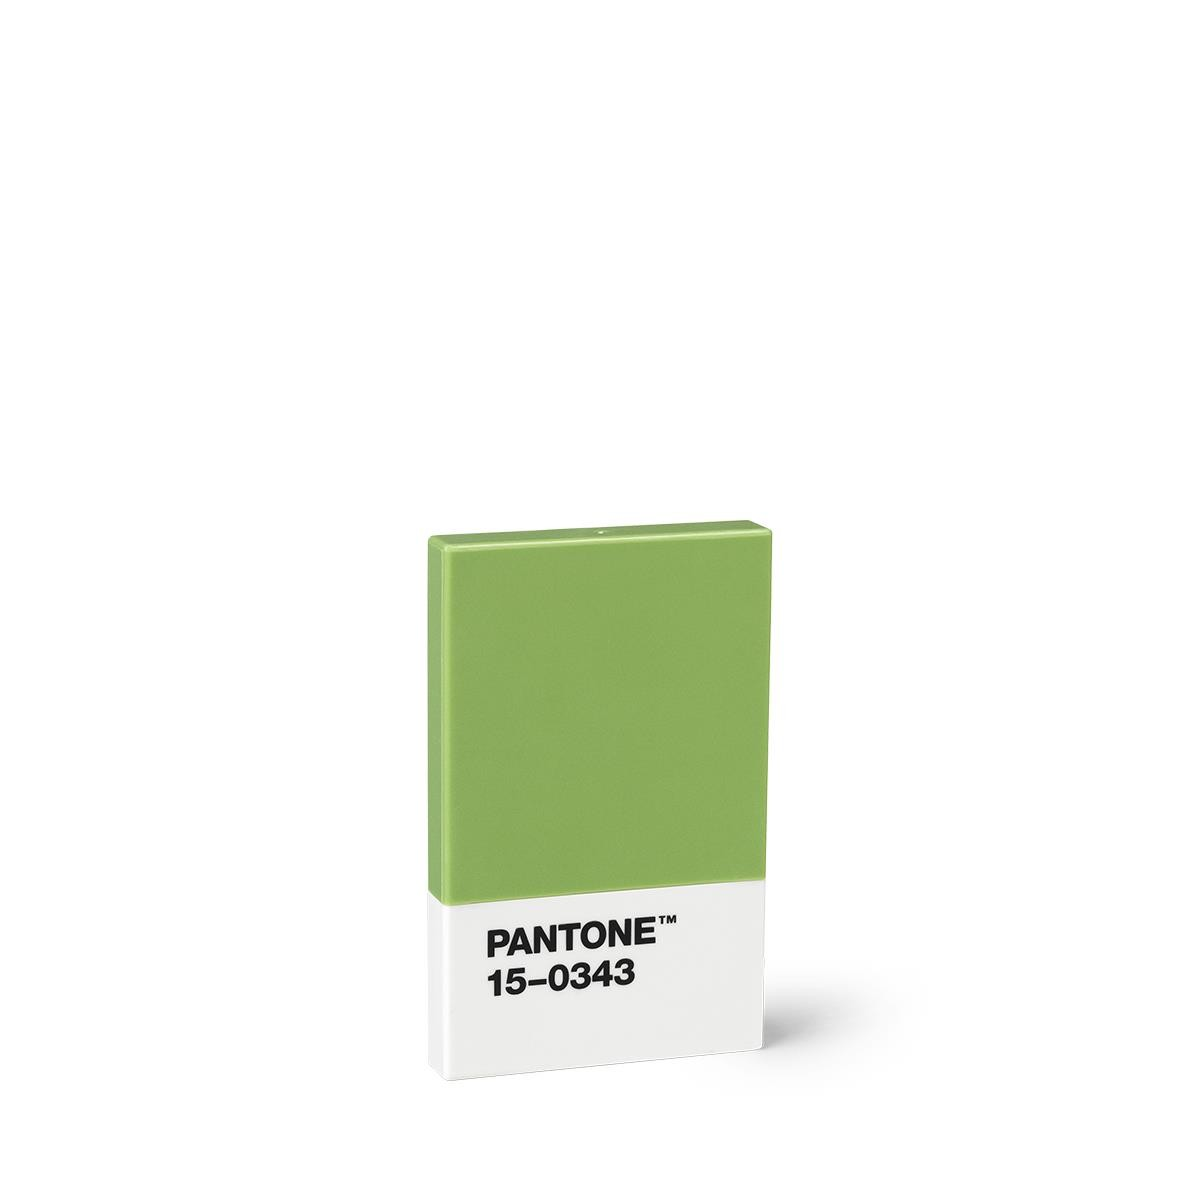 Pantone Grün Credit & Business Card Holder - Green 15-0343 Pantone™ Office Products